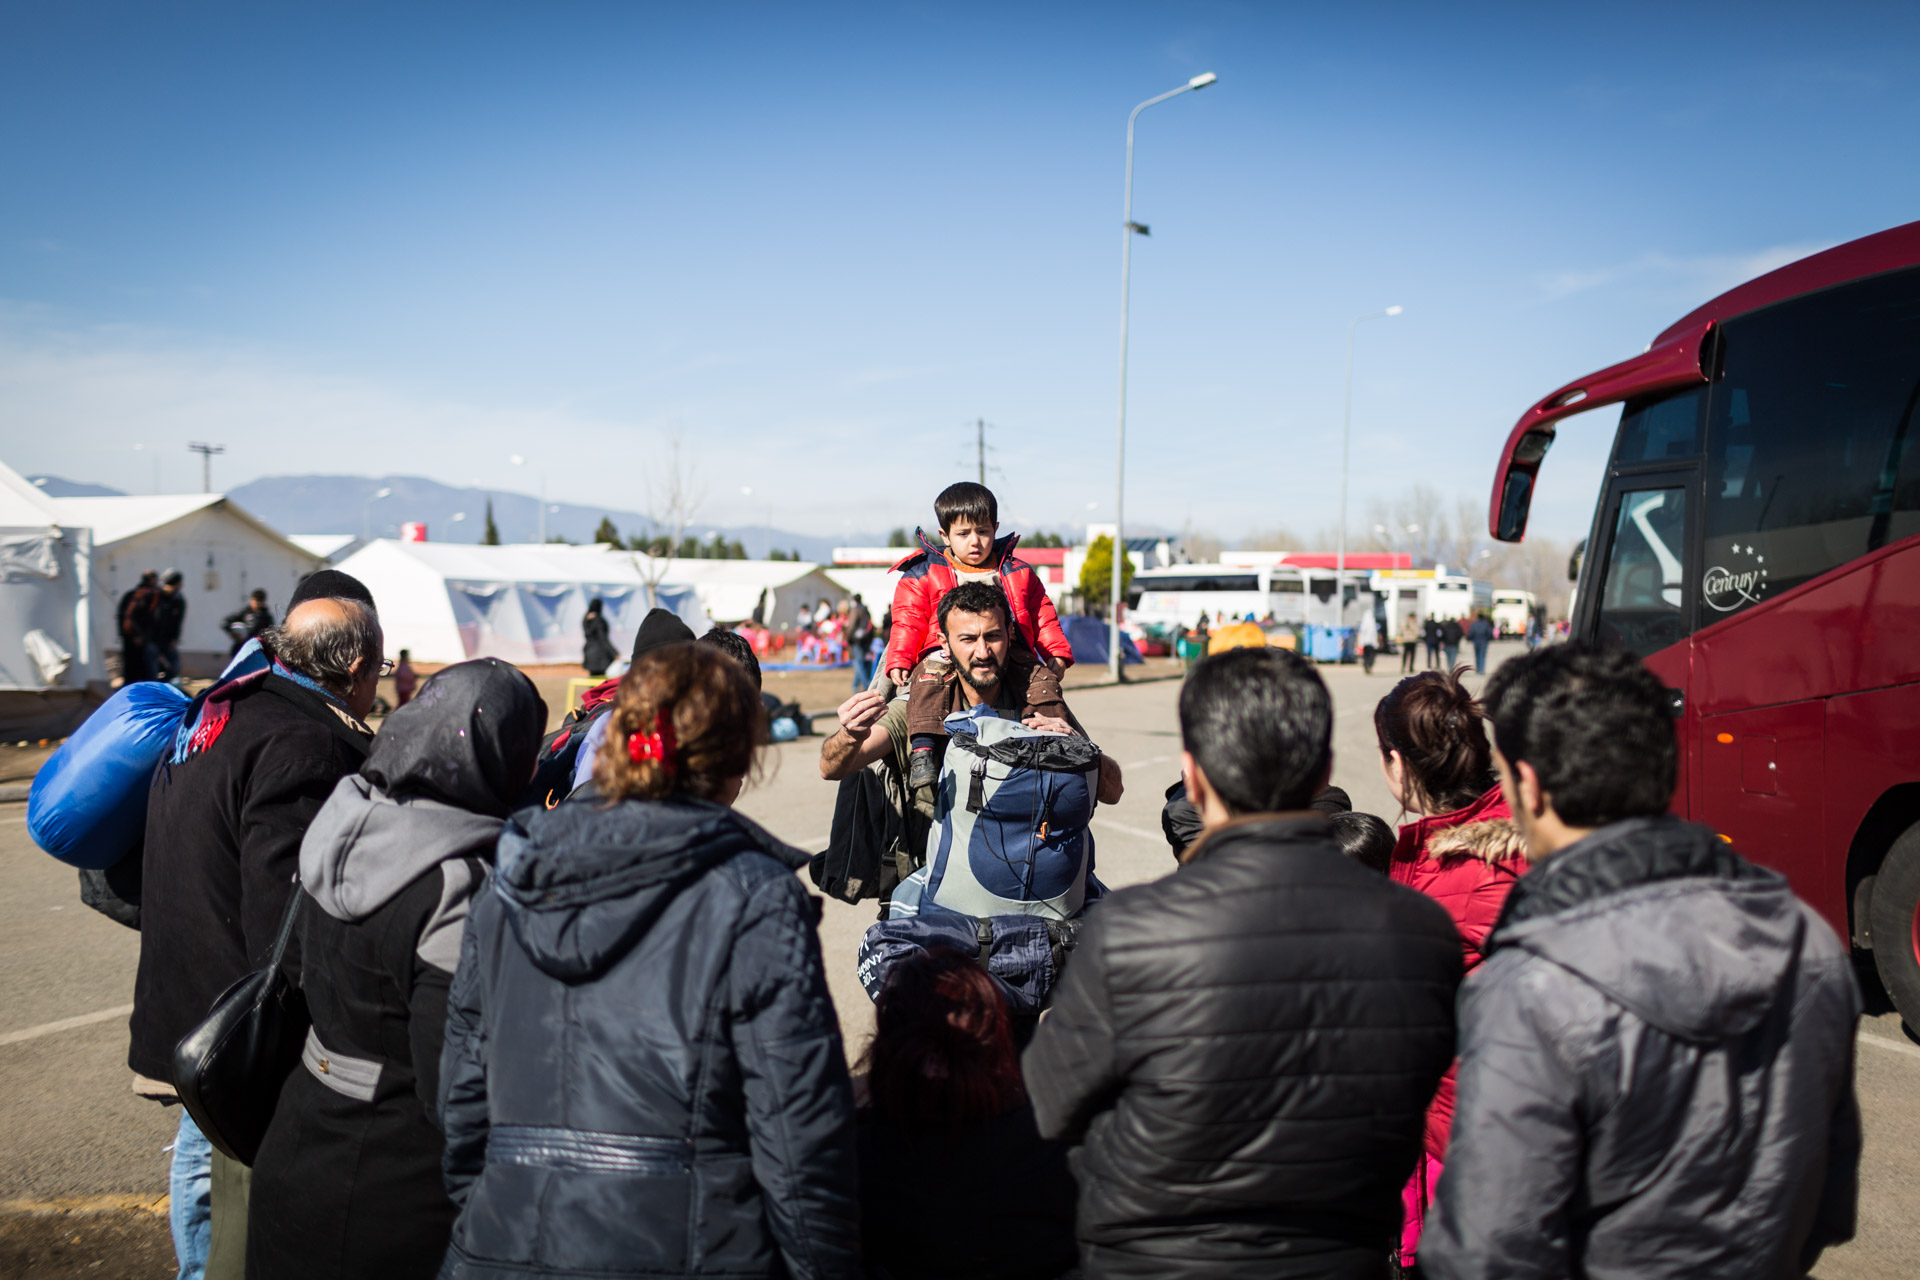 The next morning in Polycastro, rumours are spreading that the border would be shut down very soon. The rumours spread throughout the whole camp at the gas station and within 90 minutes, 2000 people decide to make their way to Idomeni on foot. Basem talks with fellow refugees what to do.